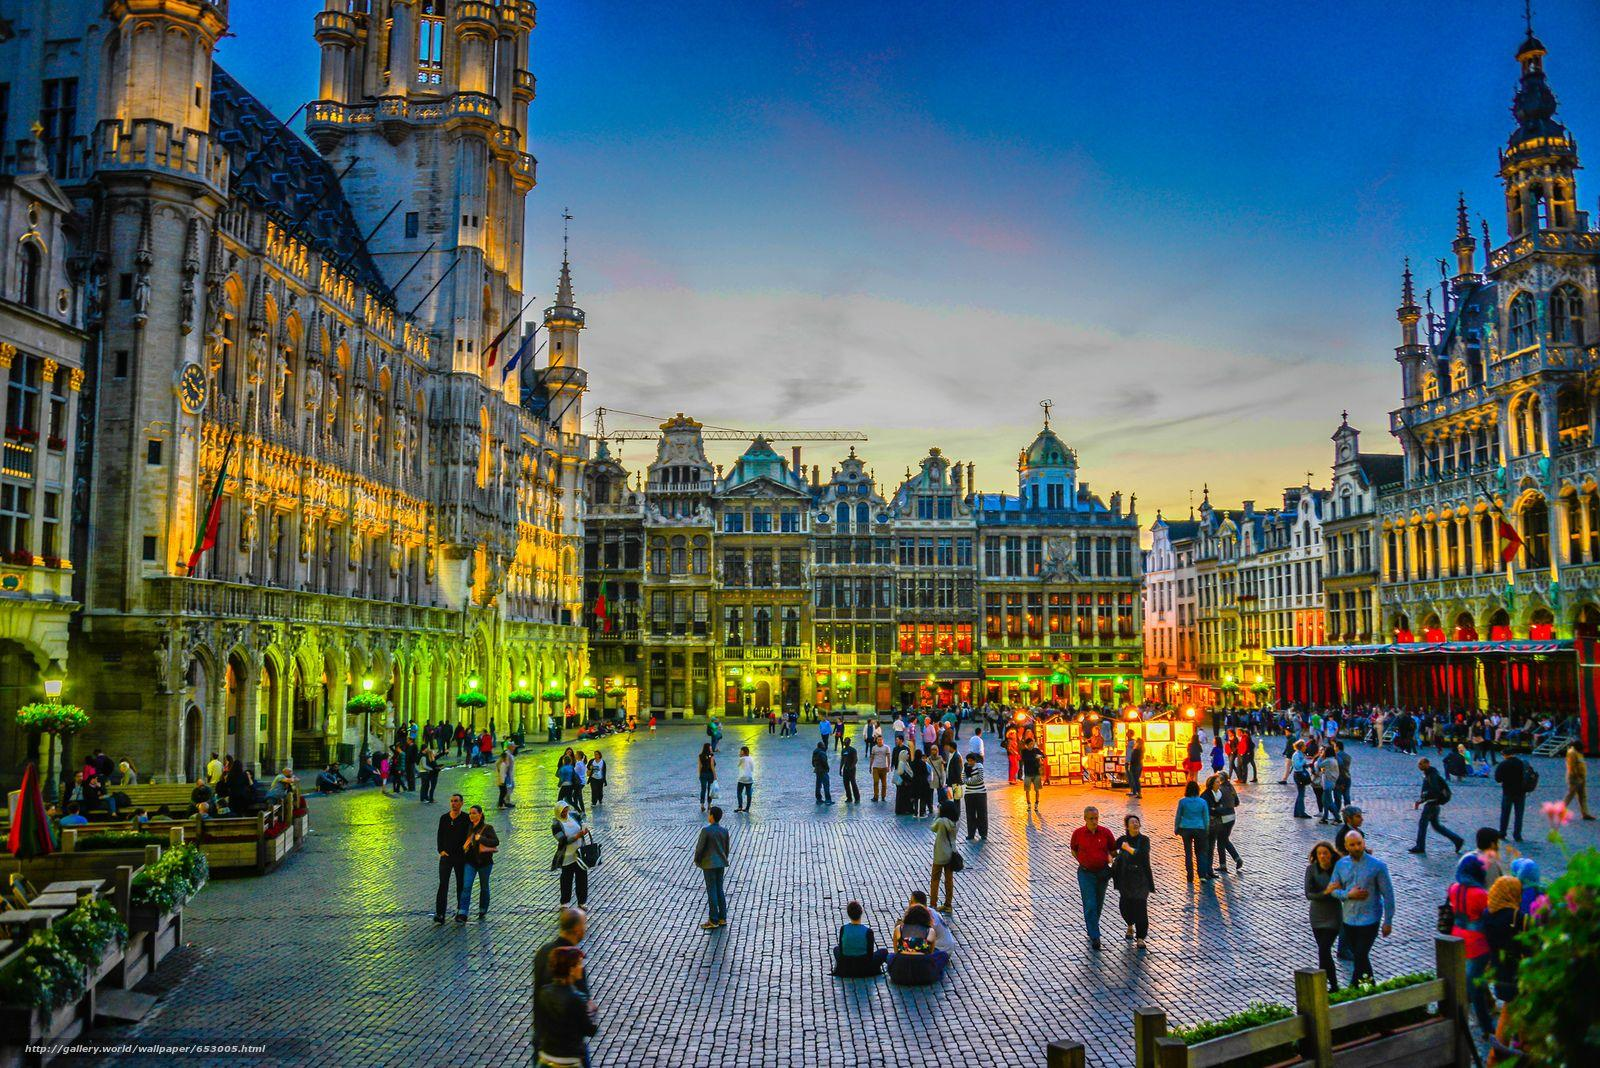 Download wallpapers Grand Place, Grote Markt, Brussels, Belgium